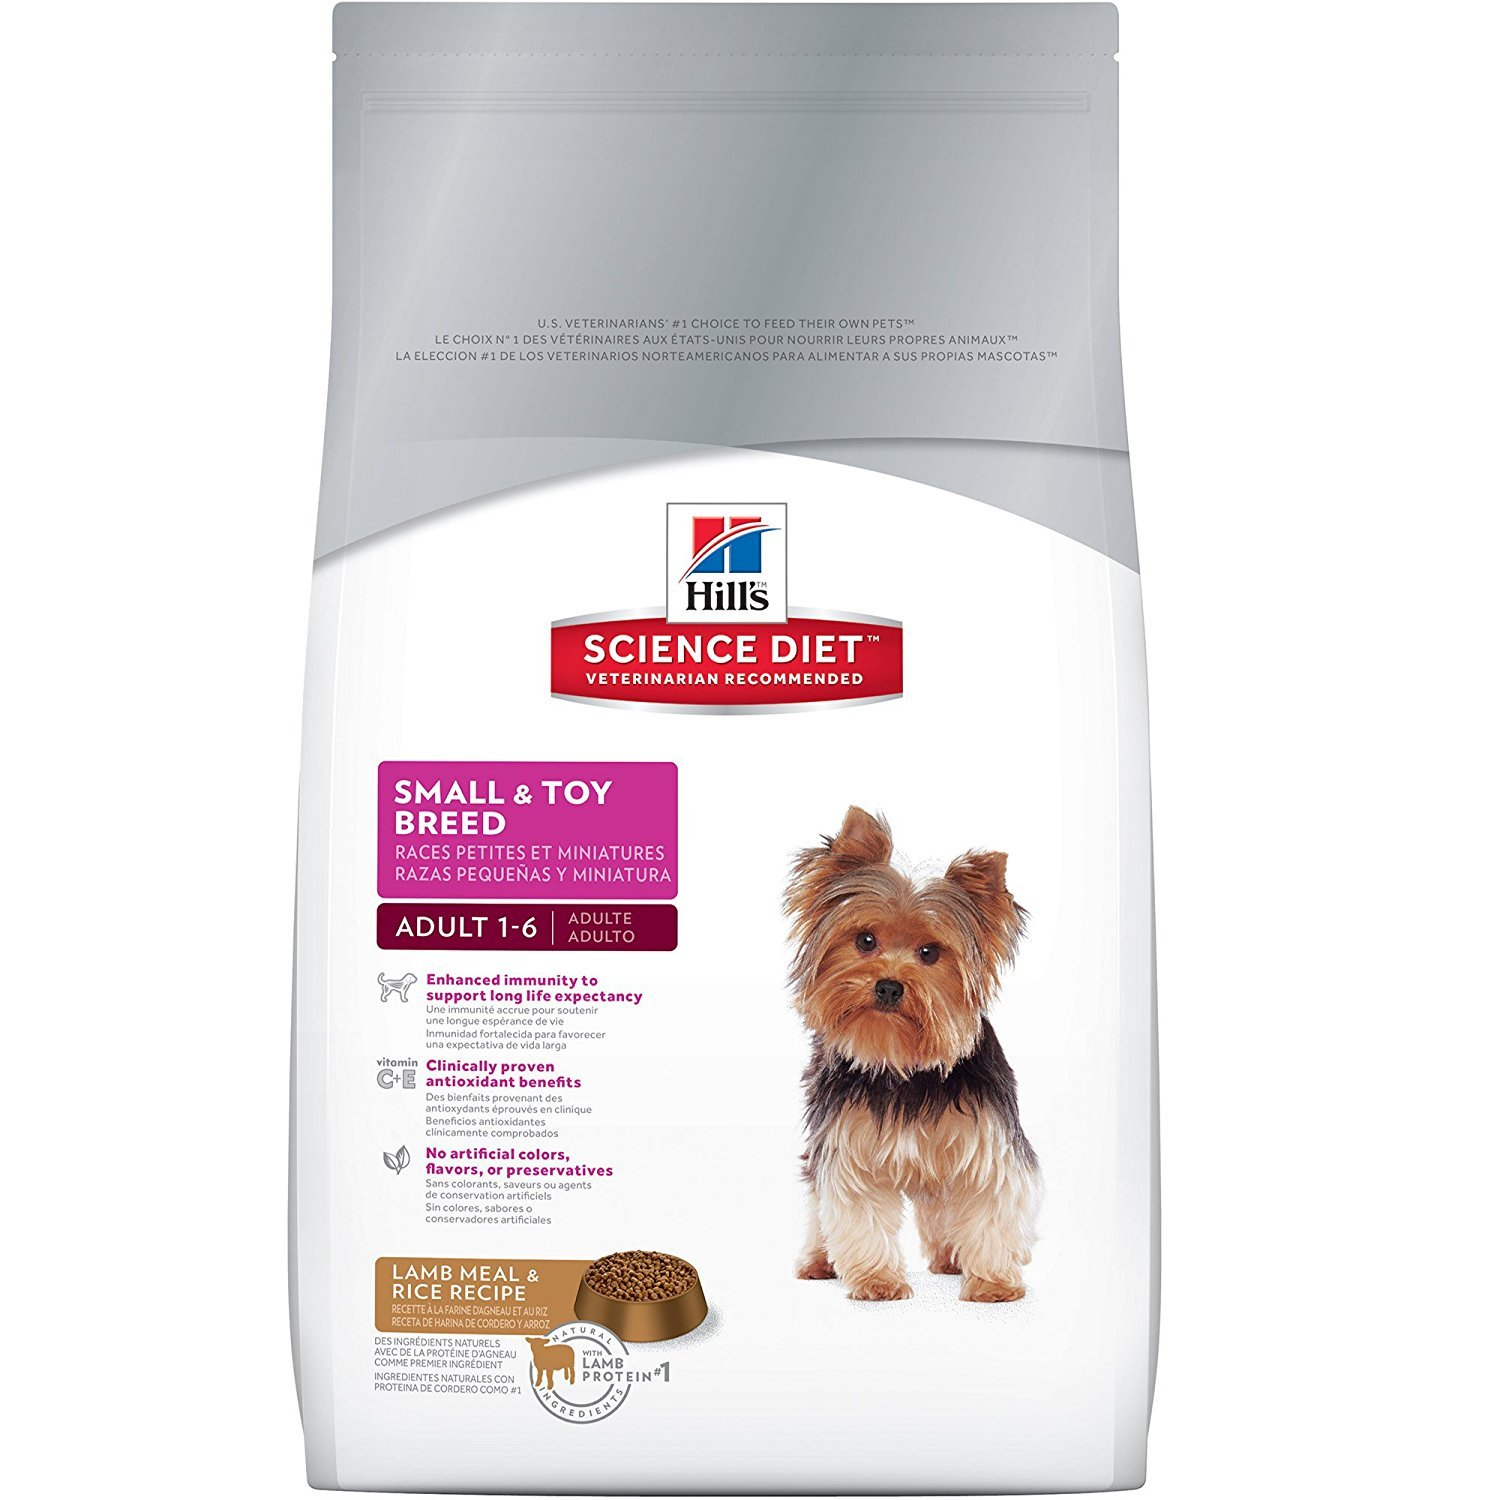 Hill's Science Diet Adult Small & Toy Breed Lamb Meal & Rice Recipe Dry Dog Food, 4.5-Pound Hill's Science Diet 2896